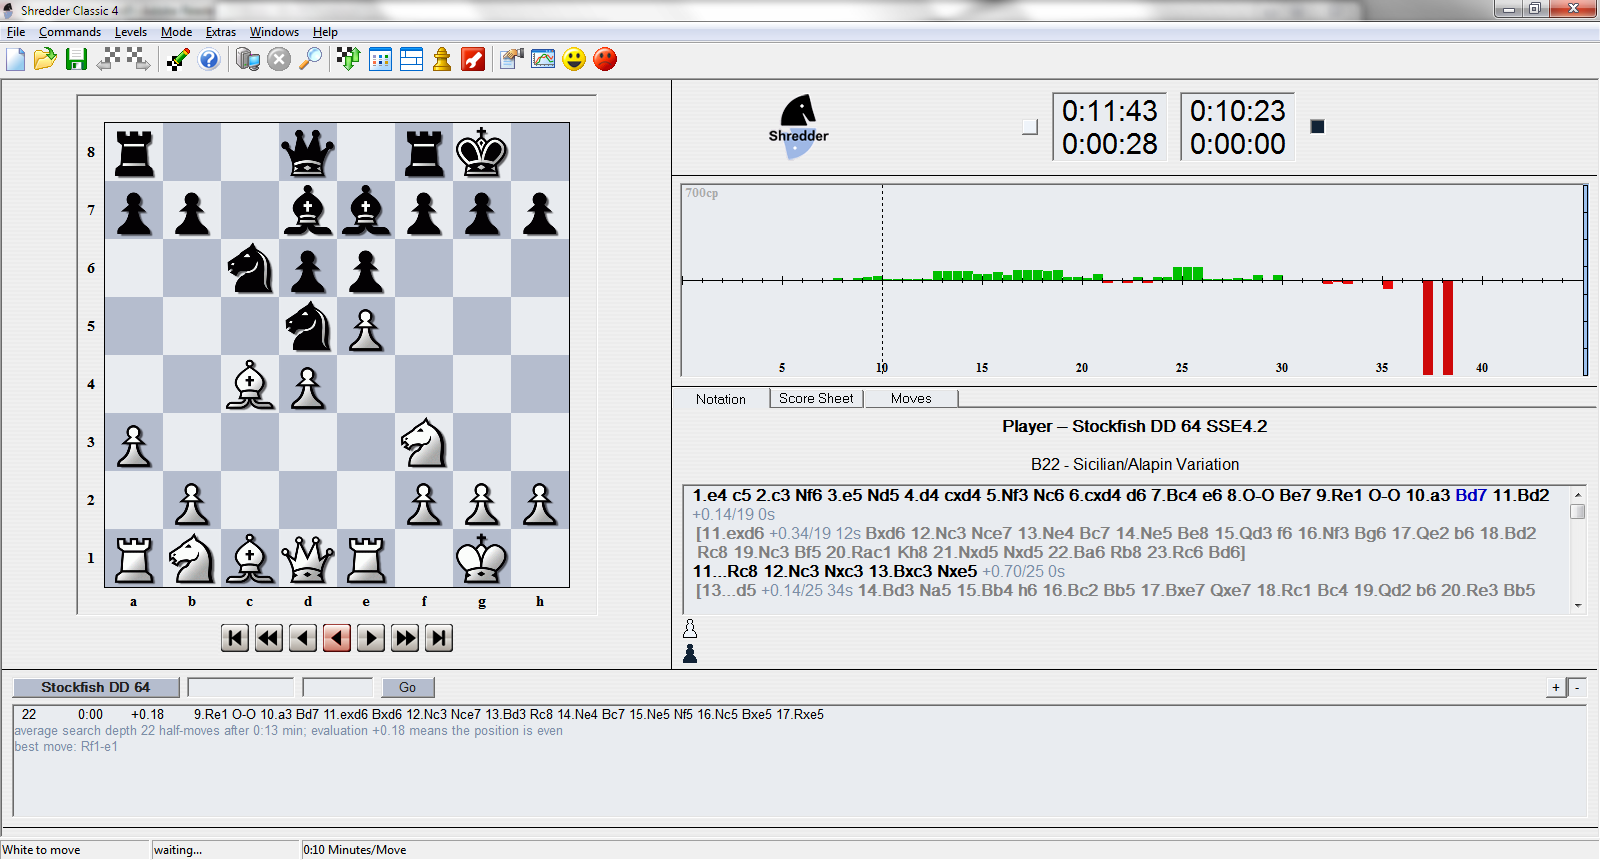 Empirical Rabbit: Stockfish DD with the Shredder Interface